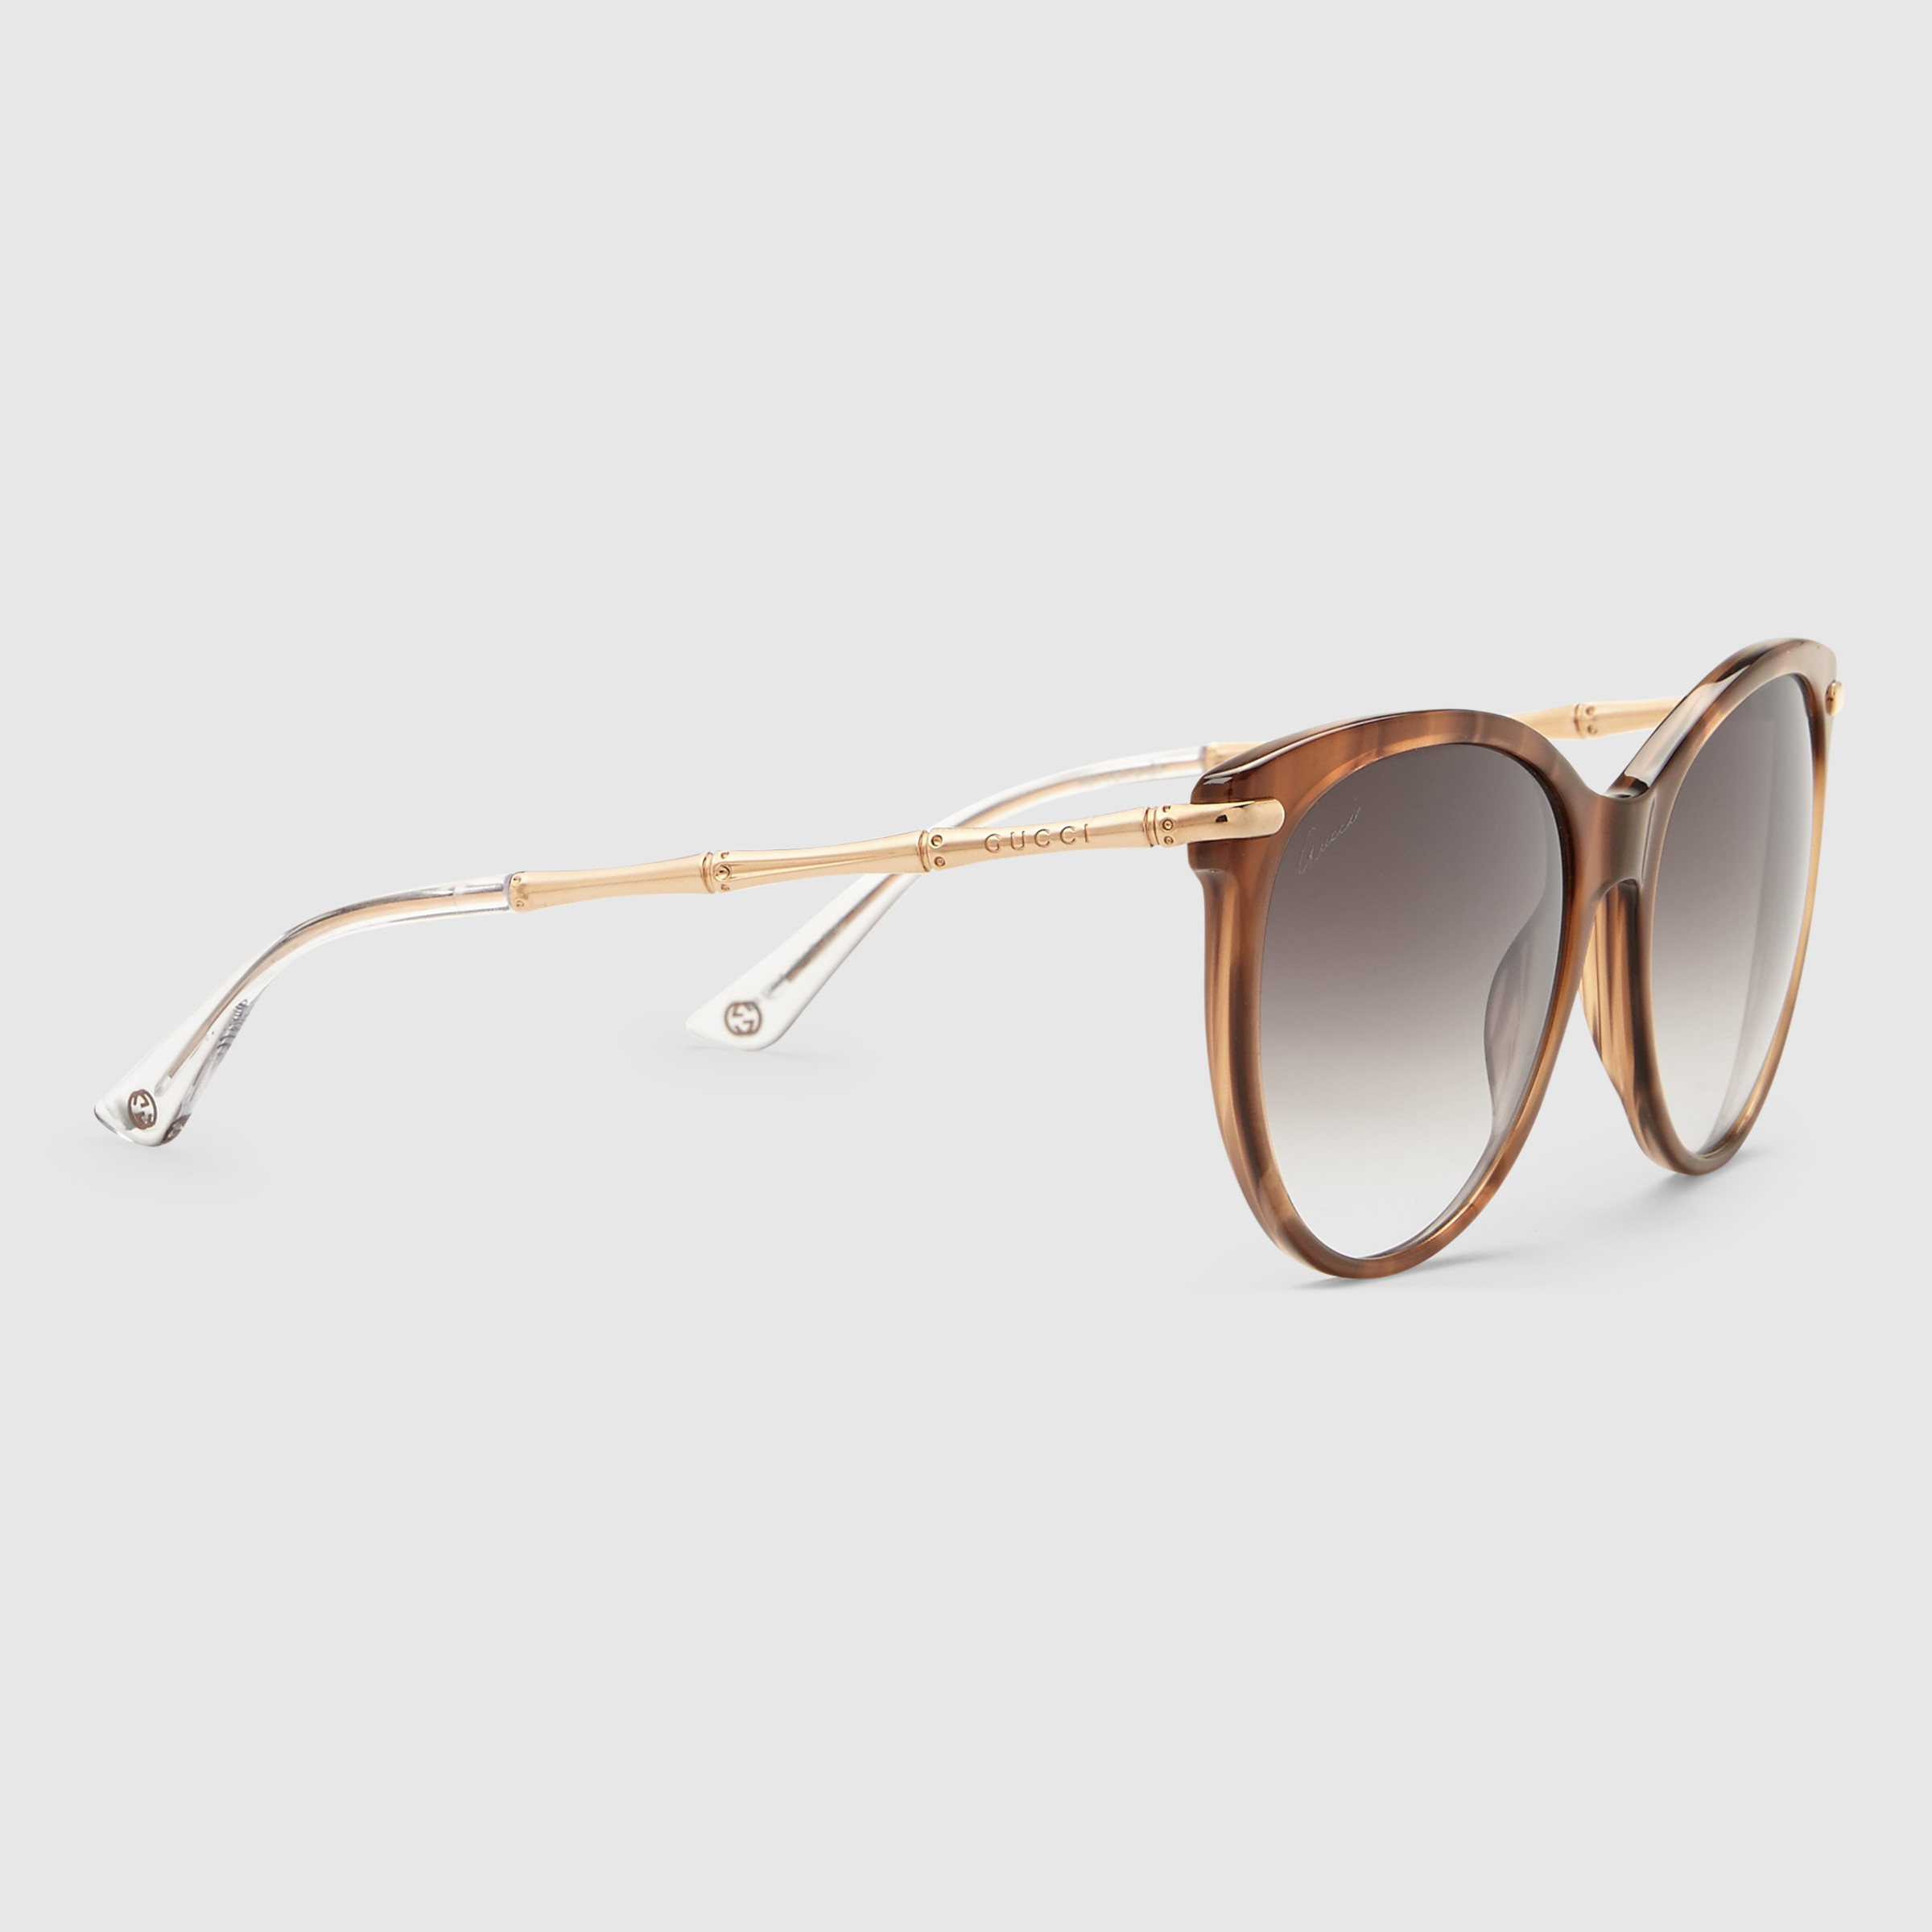 576af470ef Buy Gucci Women s Red Cat Eye Sunglasses With Metal Bamboo Temples